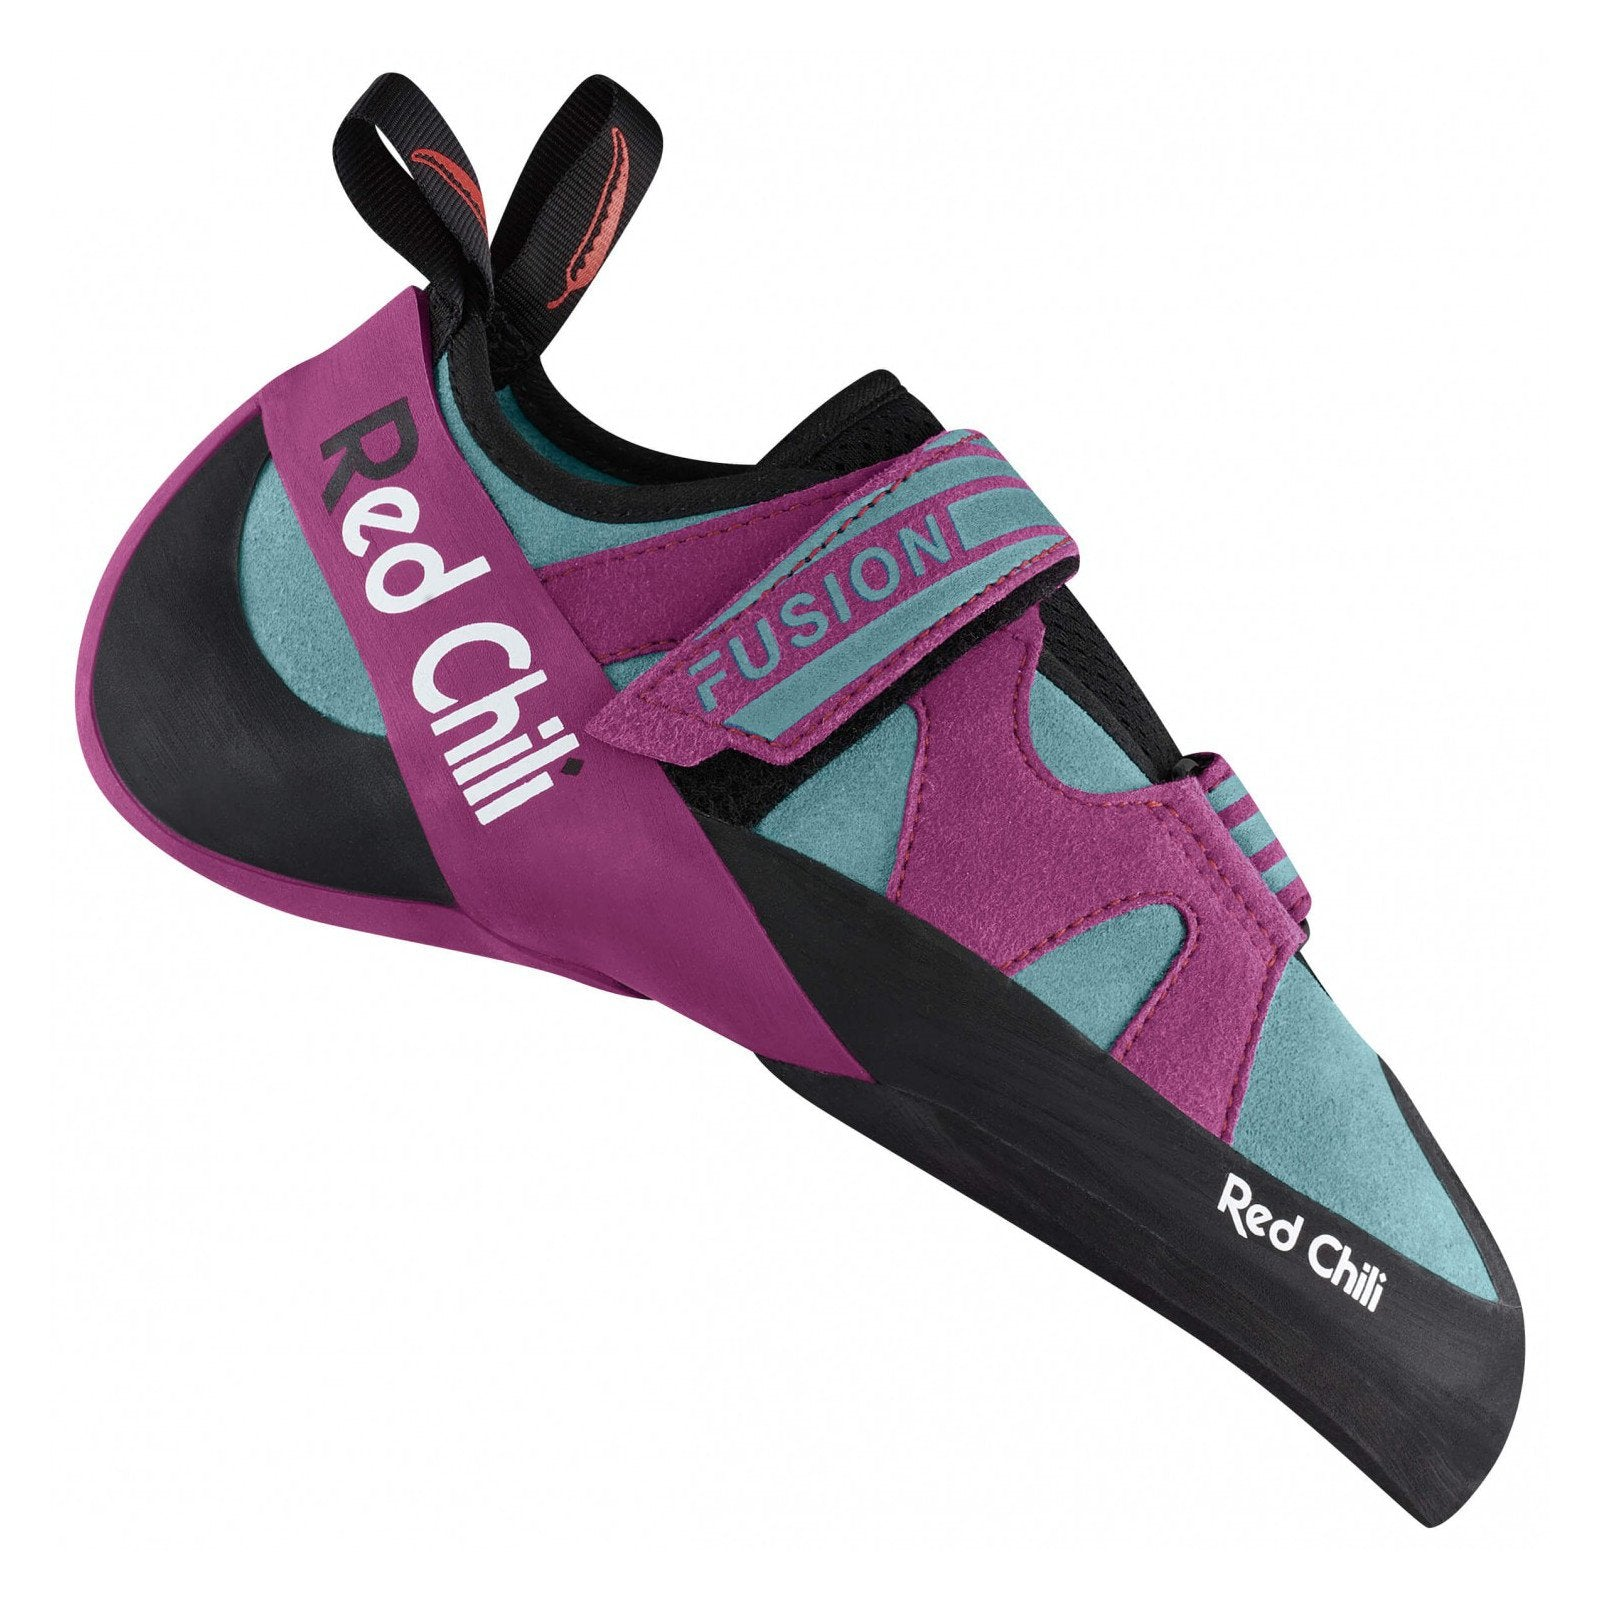 Red Chili Fusion VCR Womens climbing shoe, in black, purple and grey colours